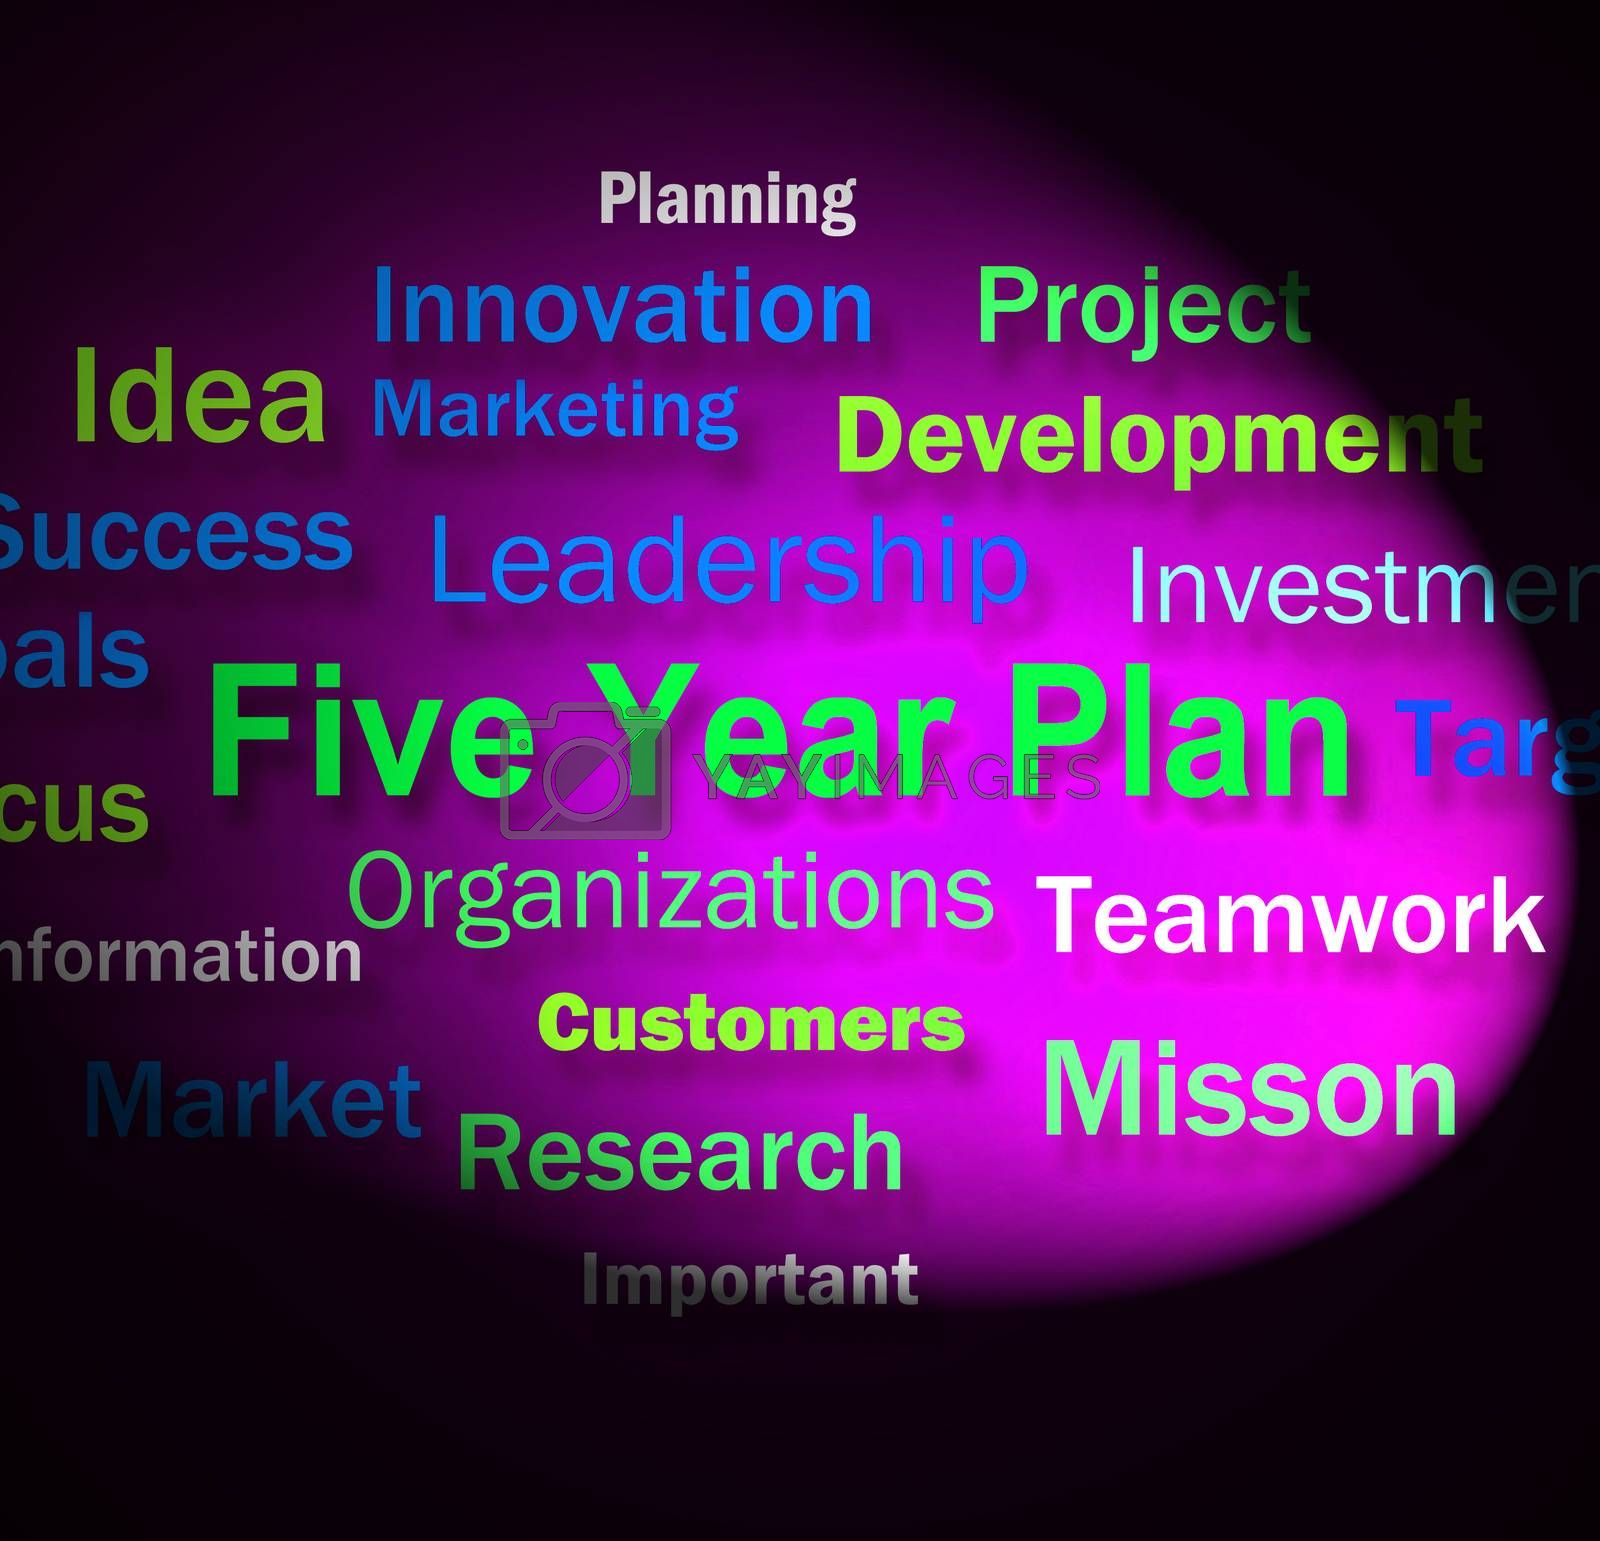 Five Year Plan Words Means Strategy For Next 5 Years by stuartmiles